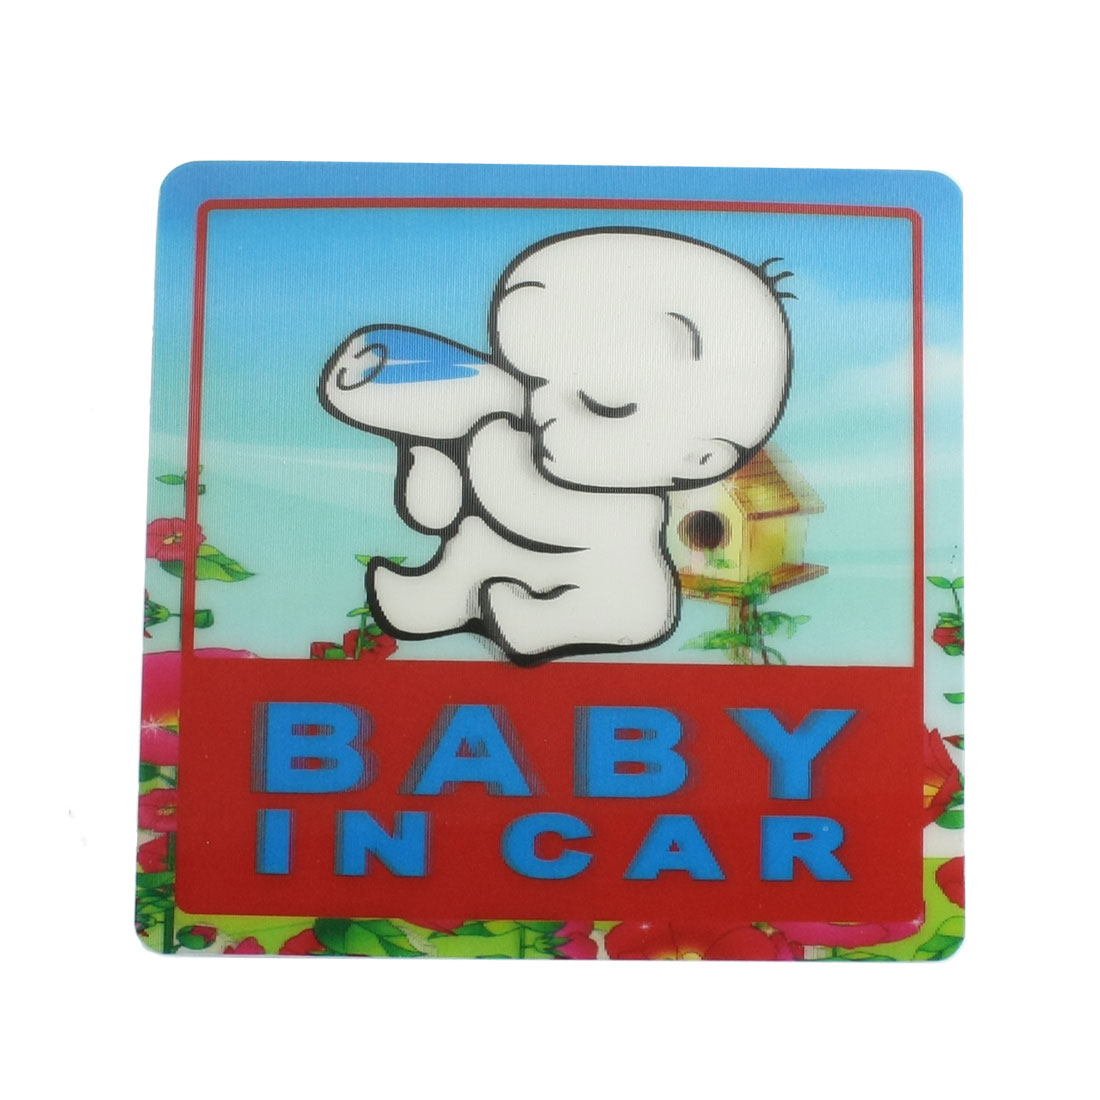 Cars Rear Window Multicolor Plastic Baby in Car Warning Safety Sign